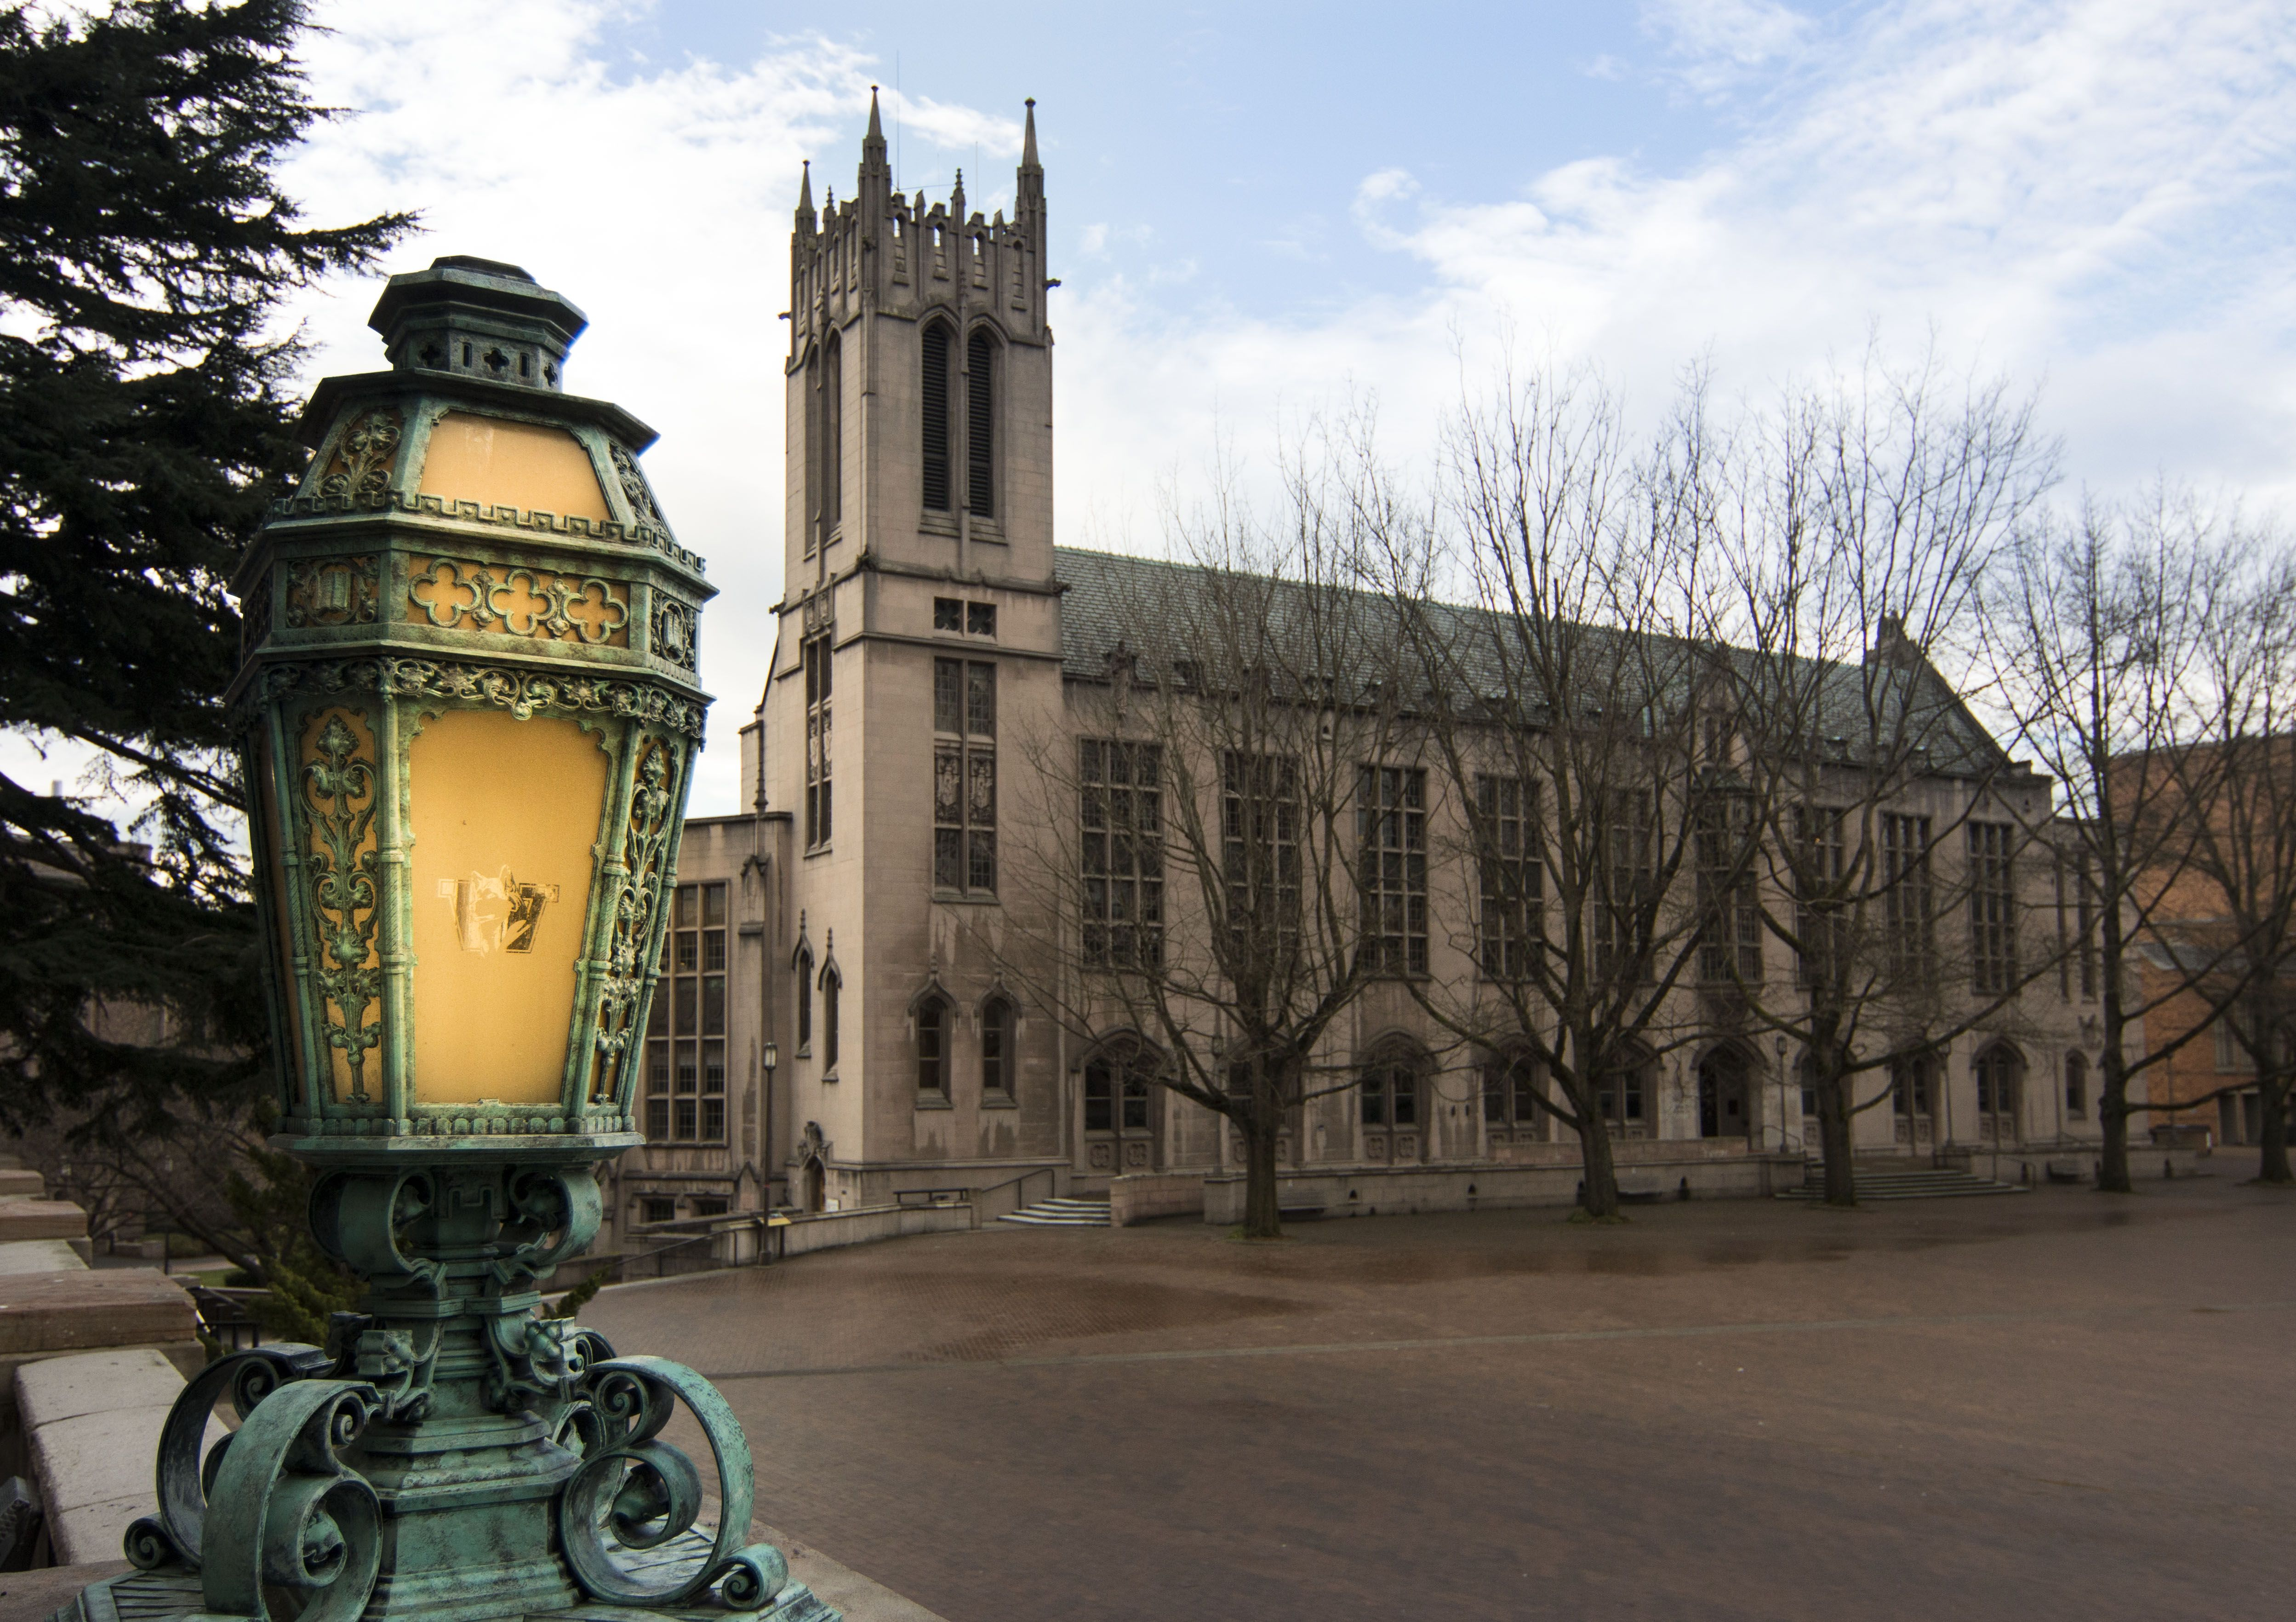 Suzzallo Library lamp with Gerberding Hall in the background.